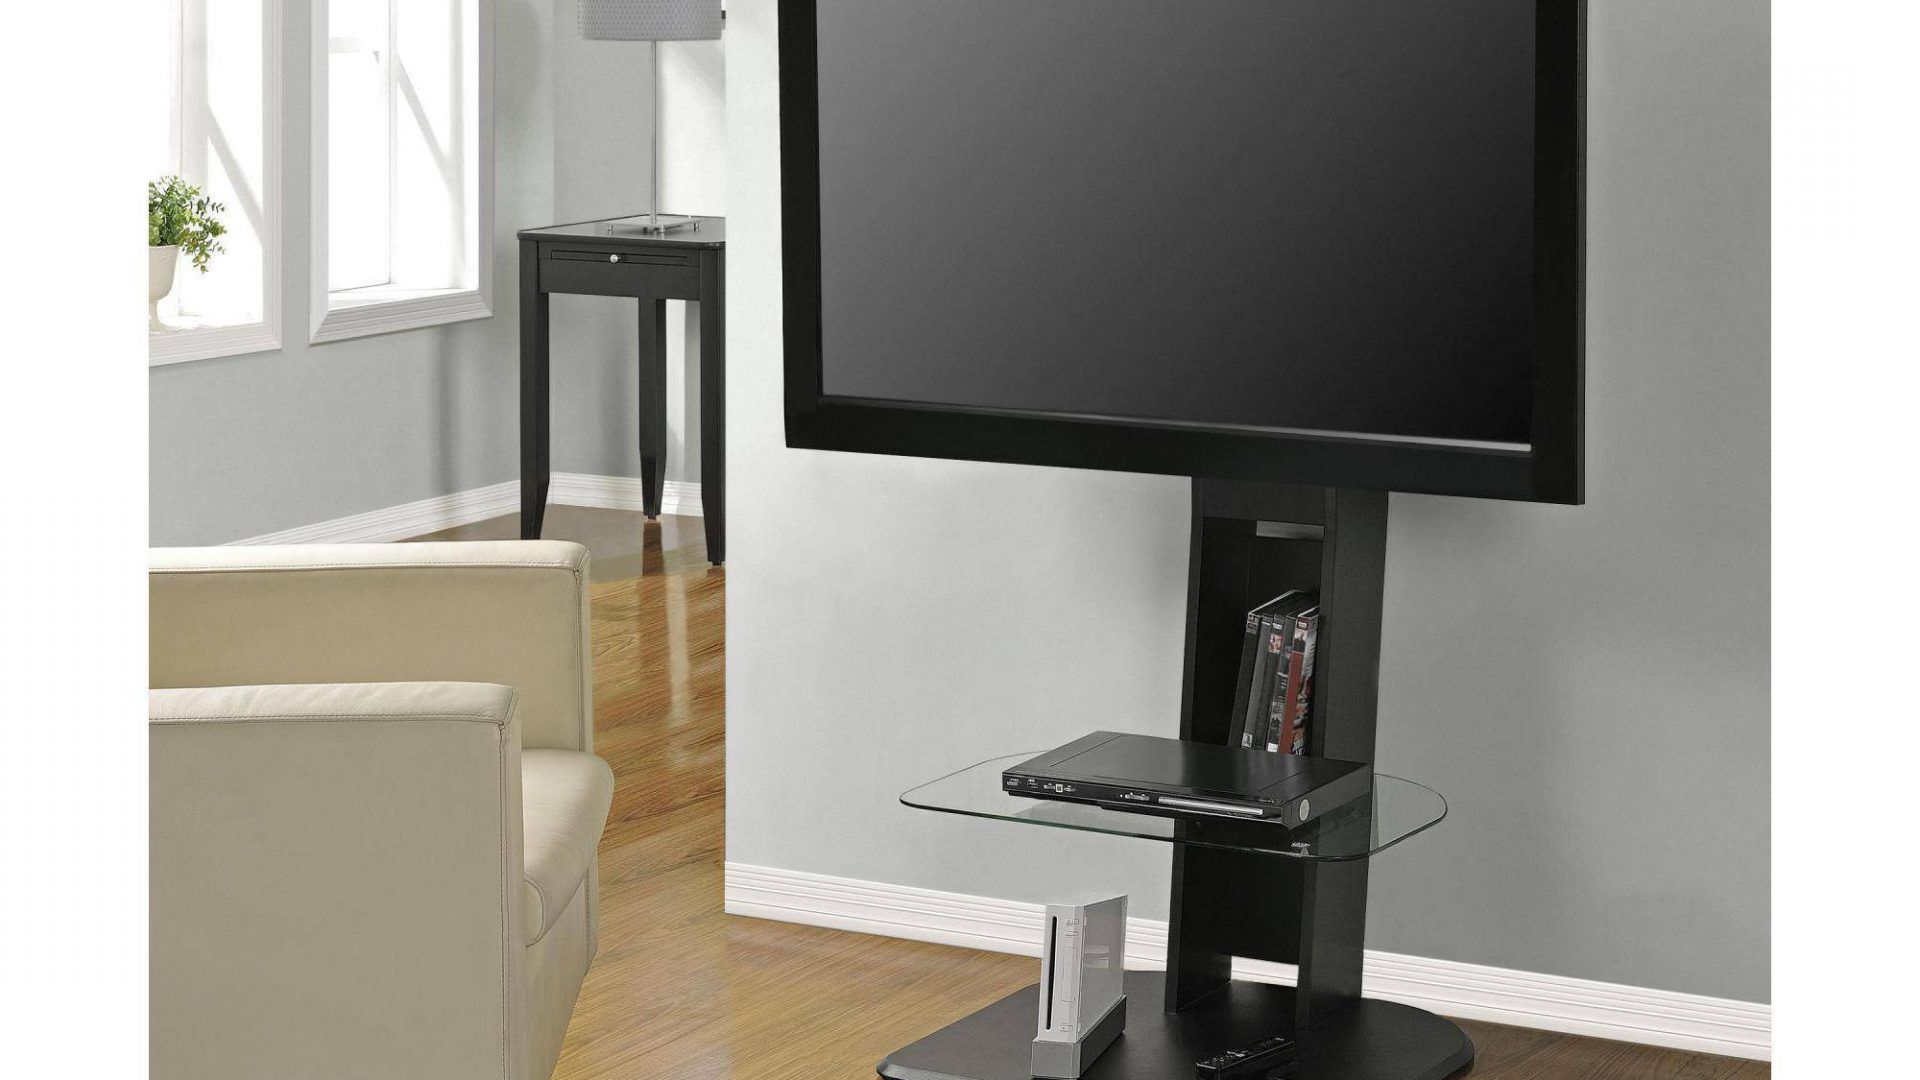 Tall Narrow Tv Stand For Bedroom Contemporary Stands Flat Screens Inside Famous Tall Narrow Tv Stands (View 13 of 20)